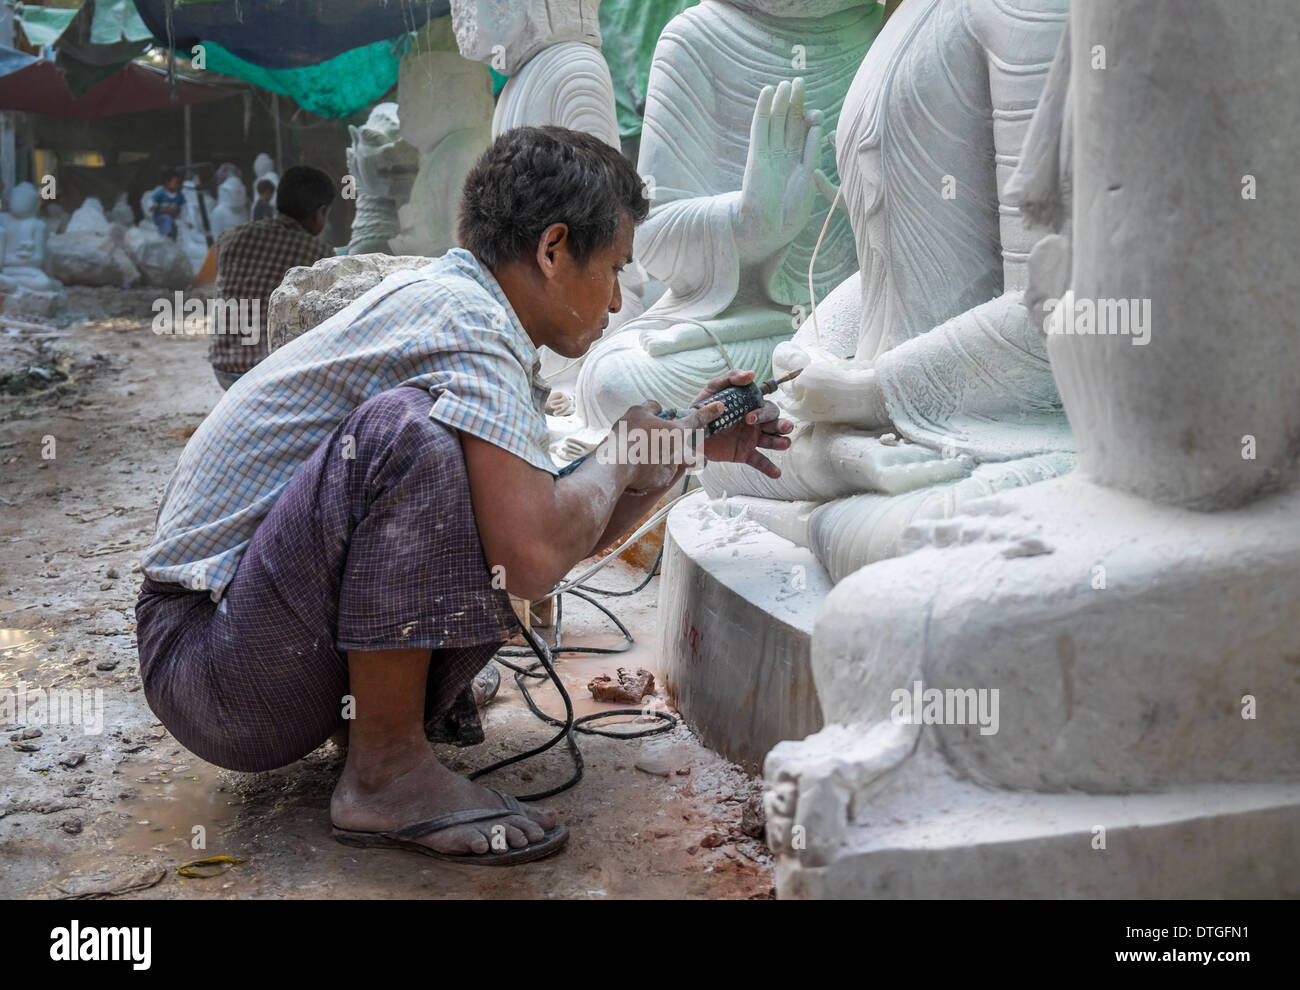 Young man carving an image of Buddha marble in a workshop in Mandalay, Myanmar Stock Photo